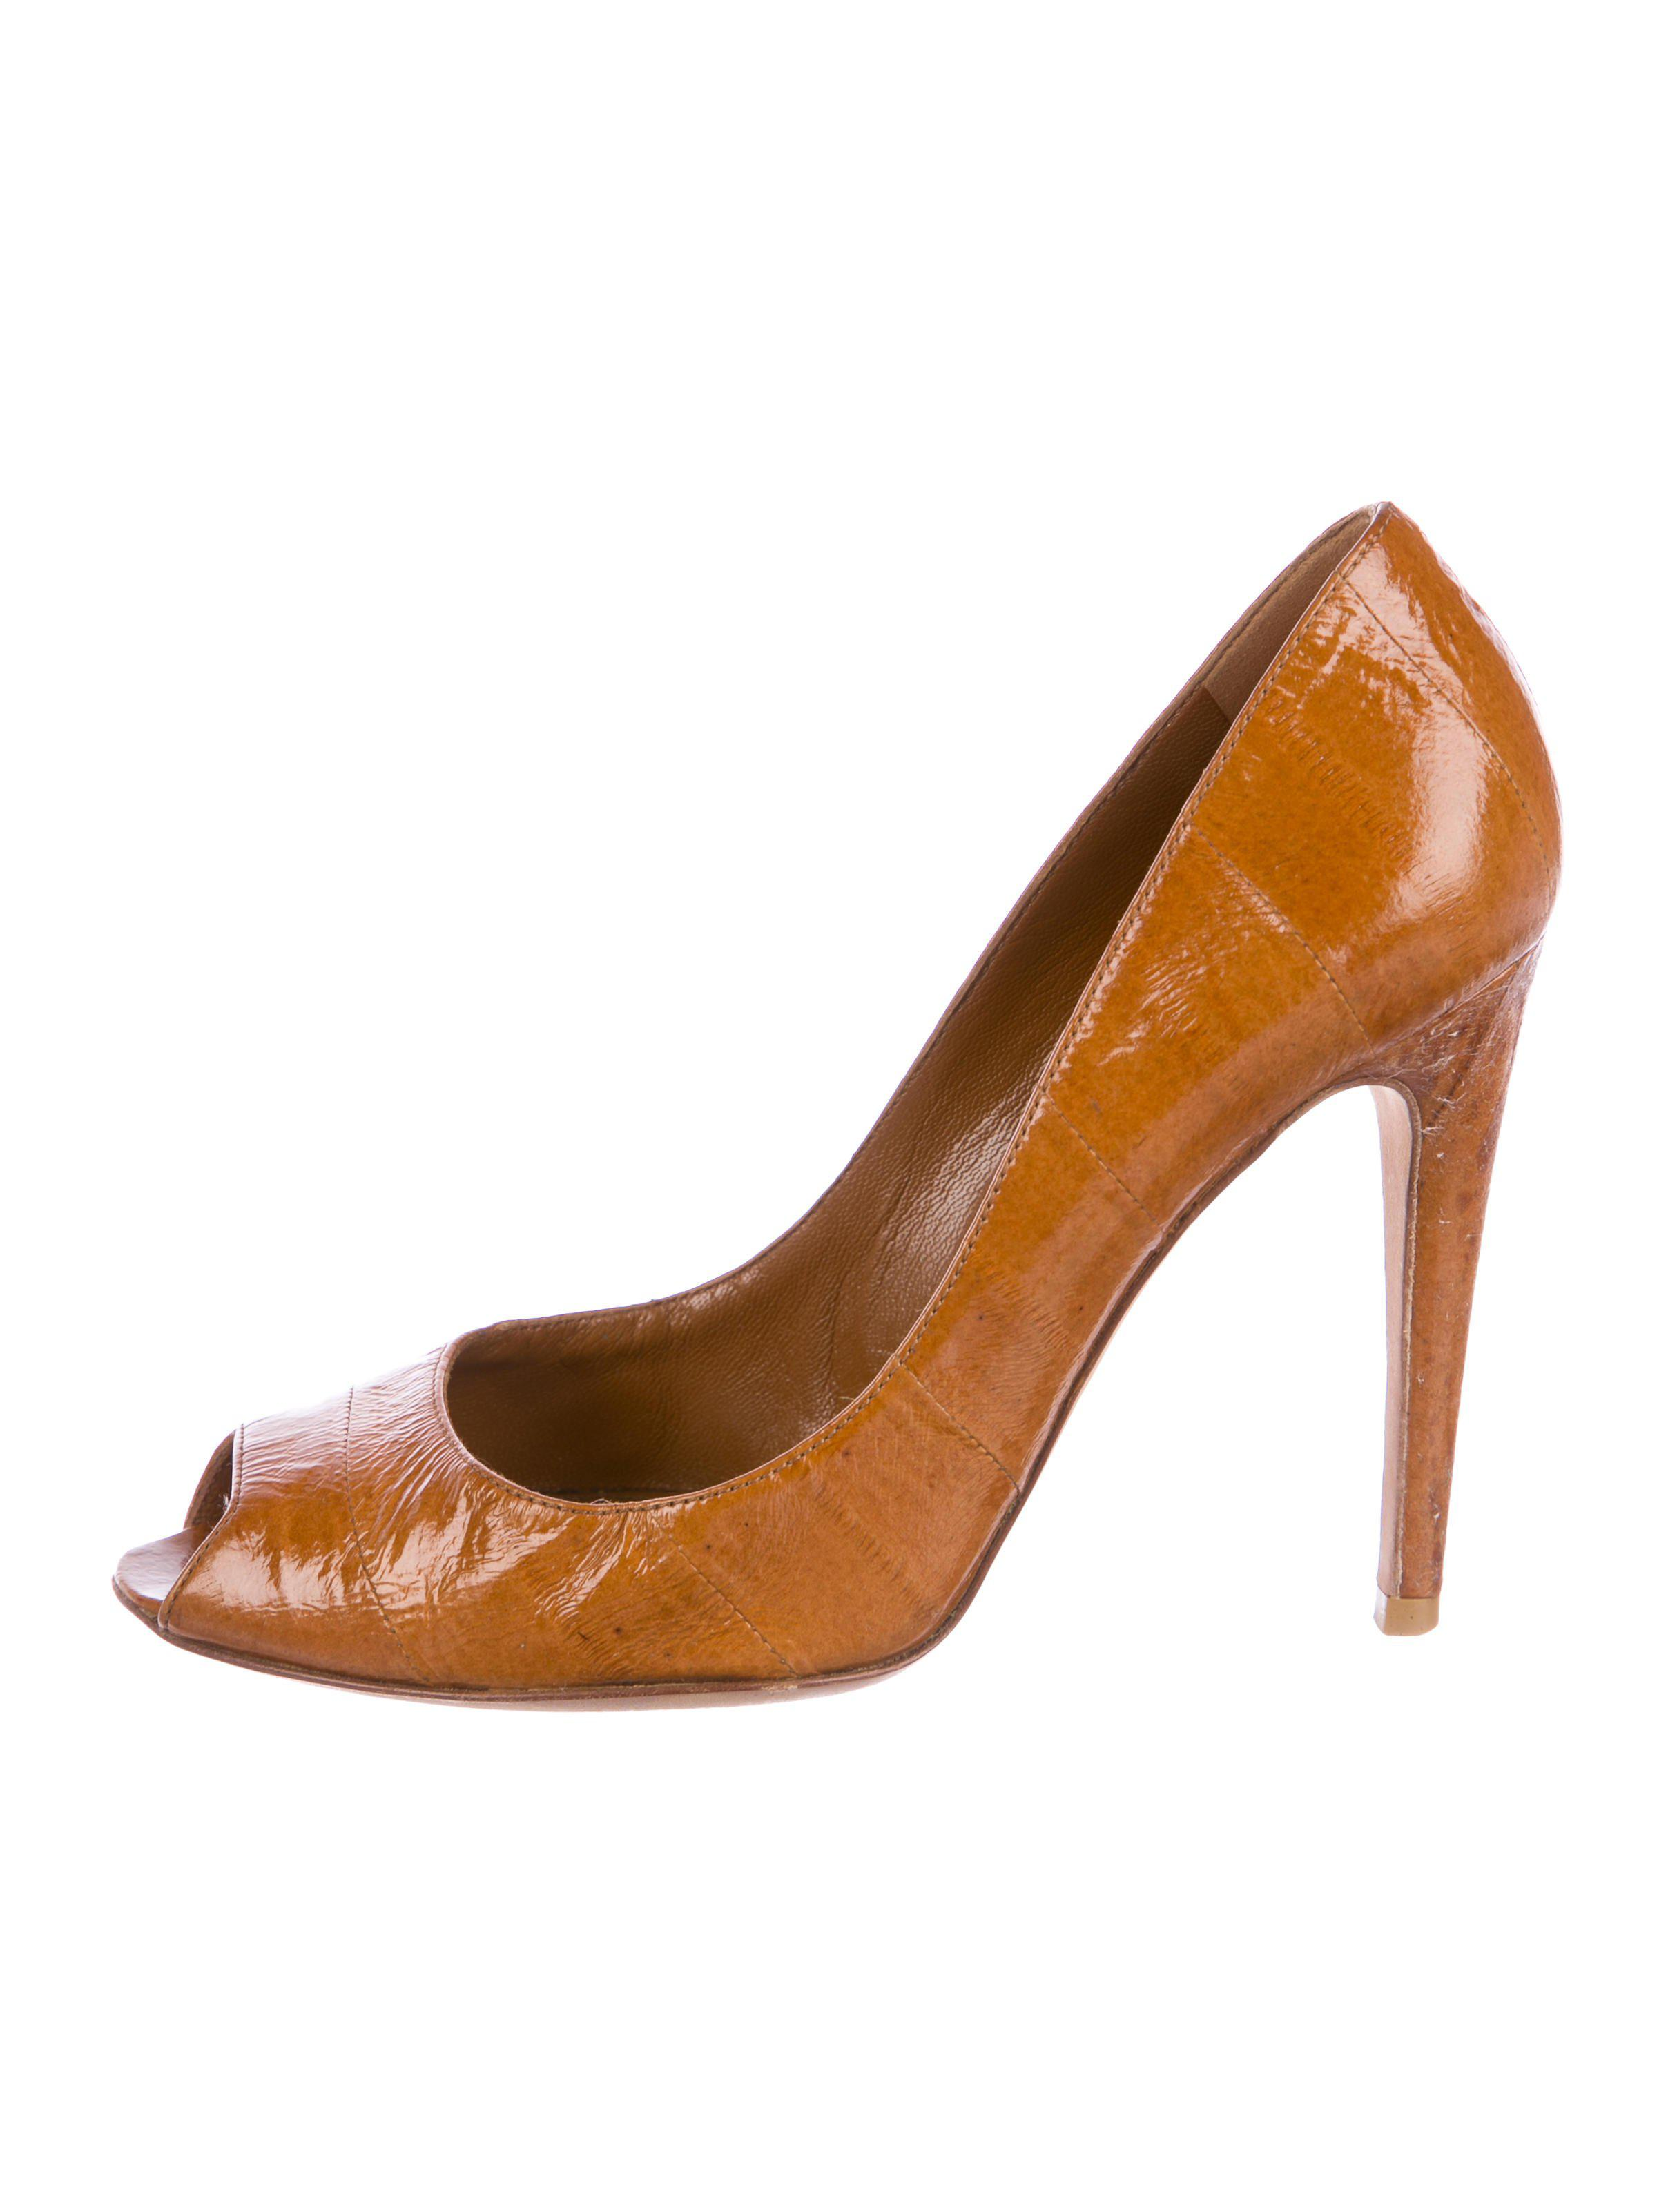 Sergio Rossi Eel Skin Peep-Toe Pumps free shipping with paypal clearance authentic cost cheap price ctNzYeK8AX